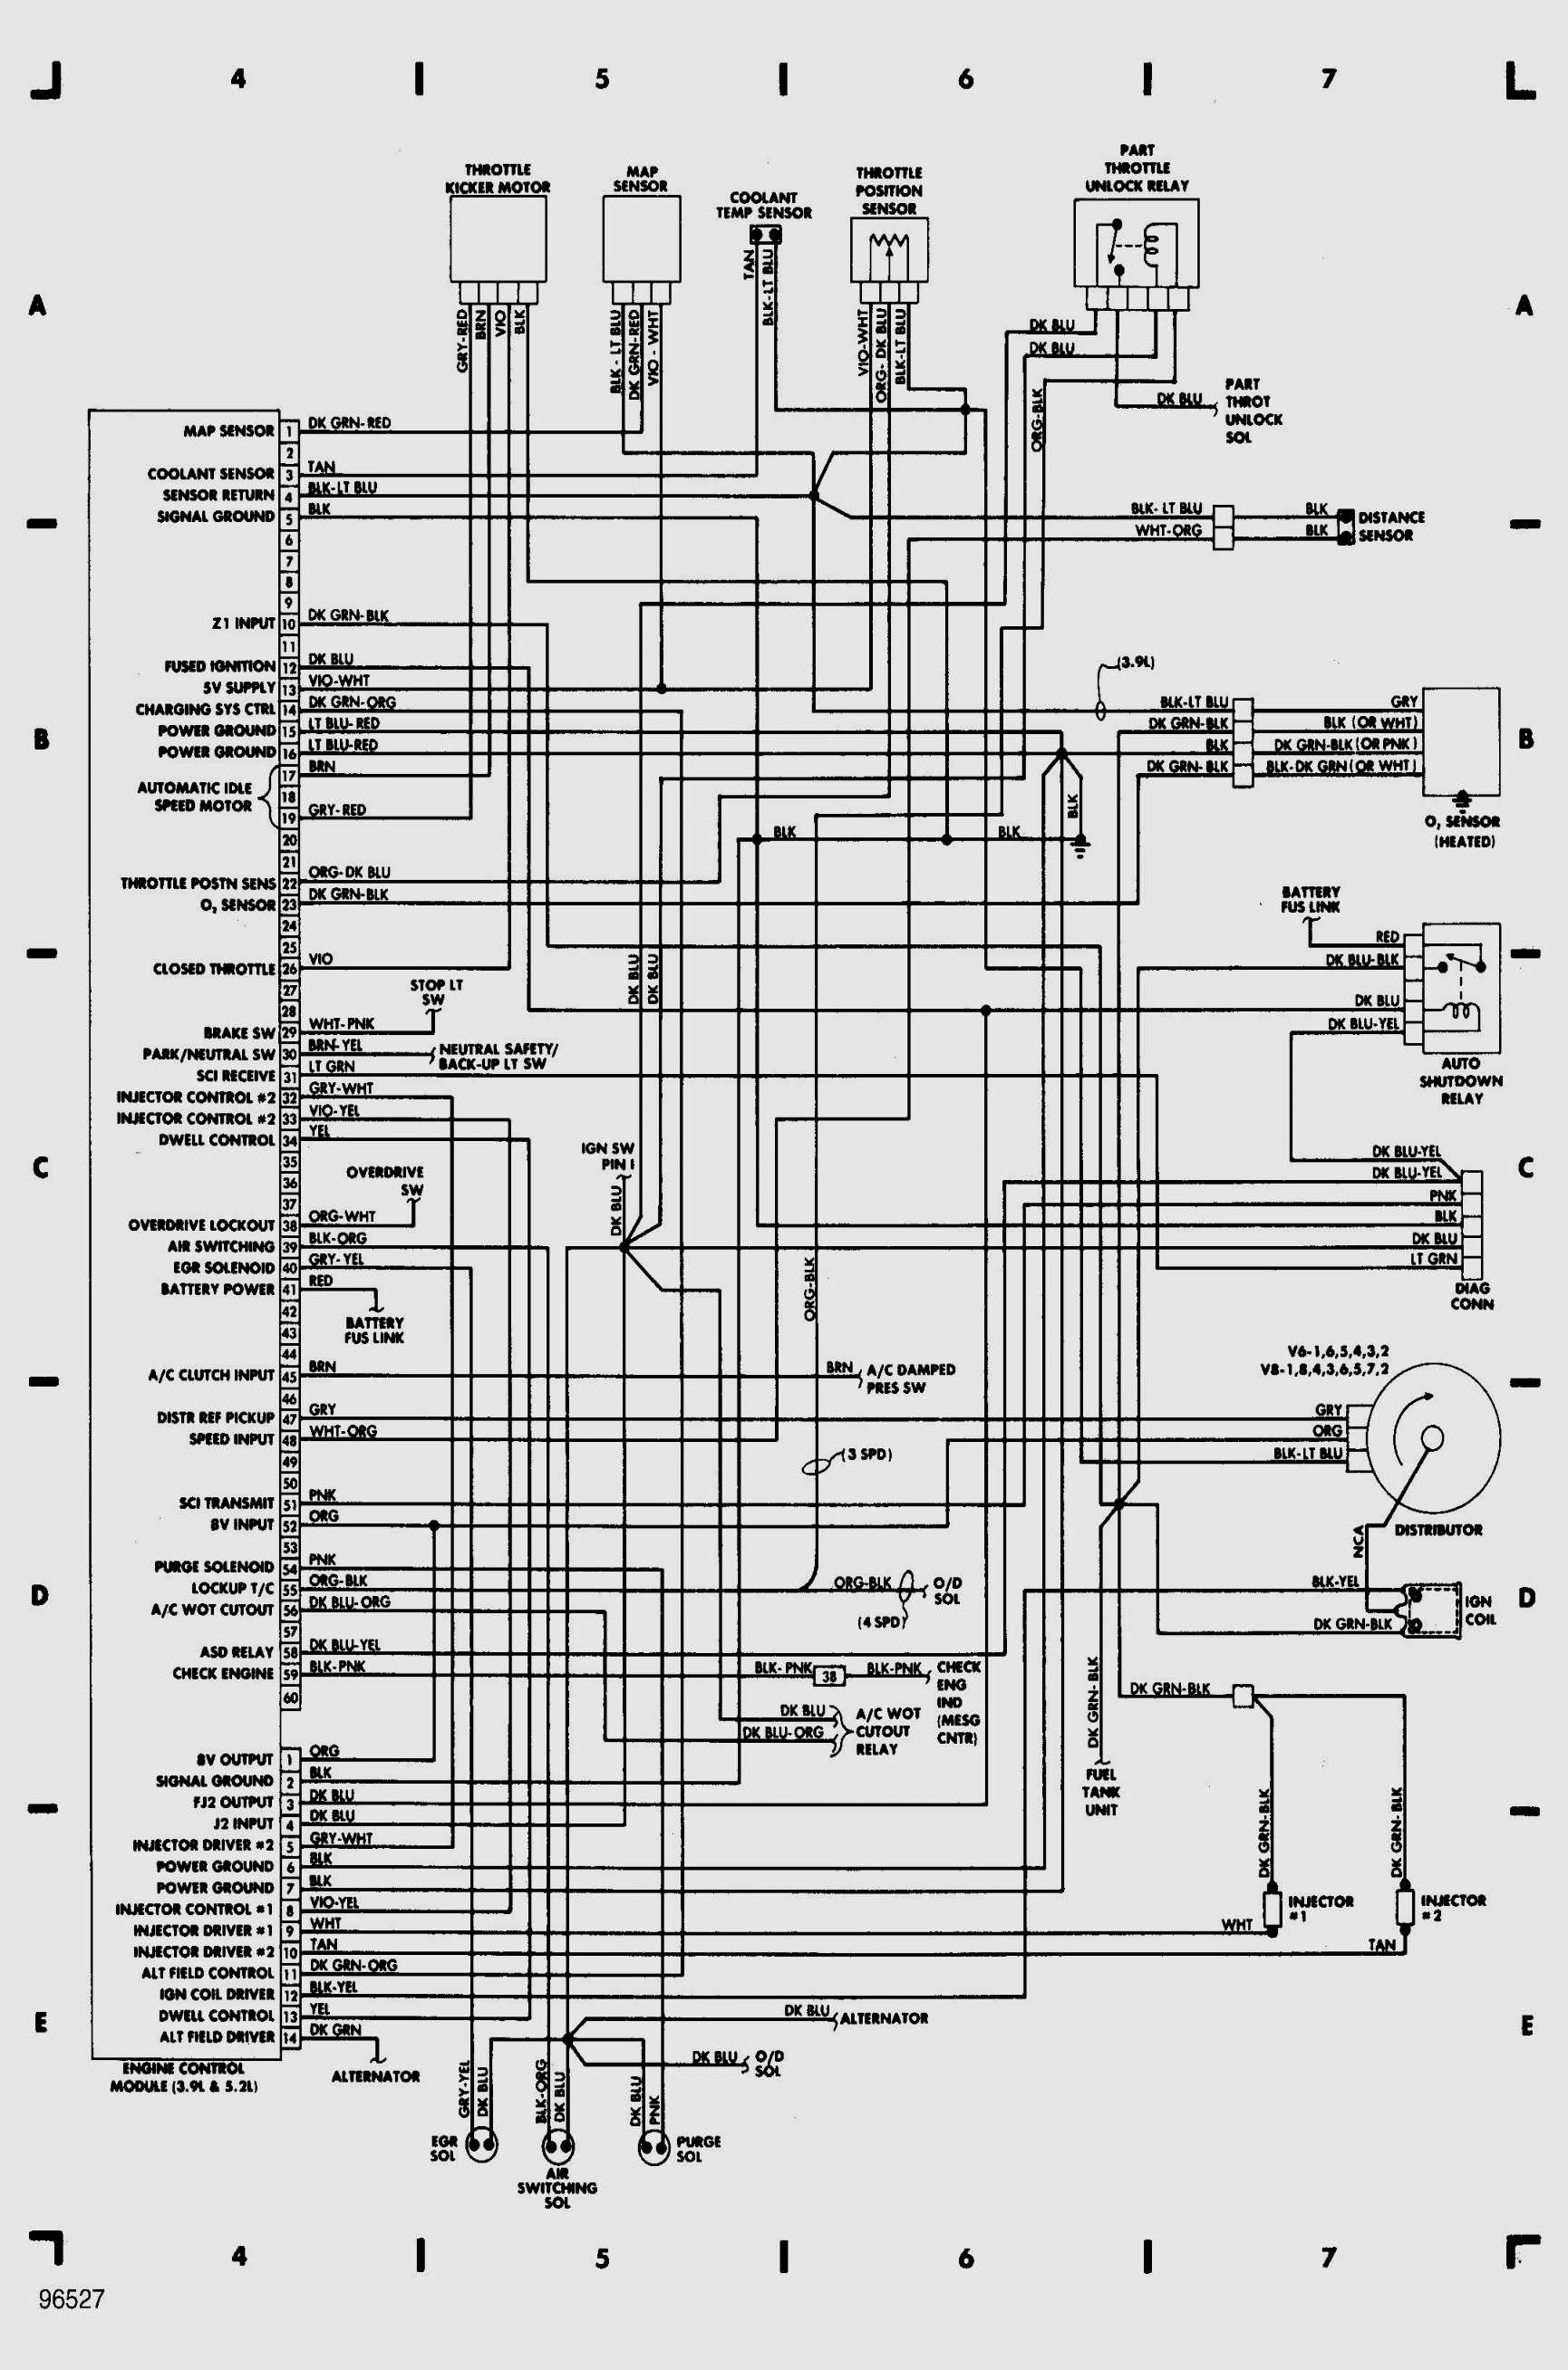 [DIAGRAM] 2009 Ram Wiring Diagram FULL Version HD Quality